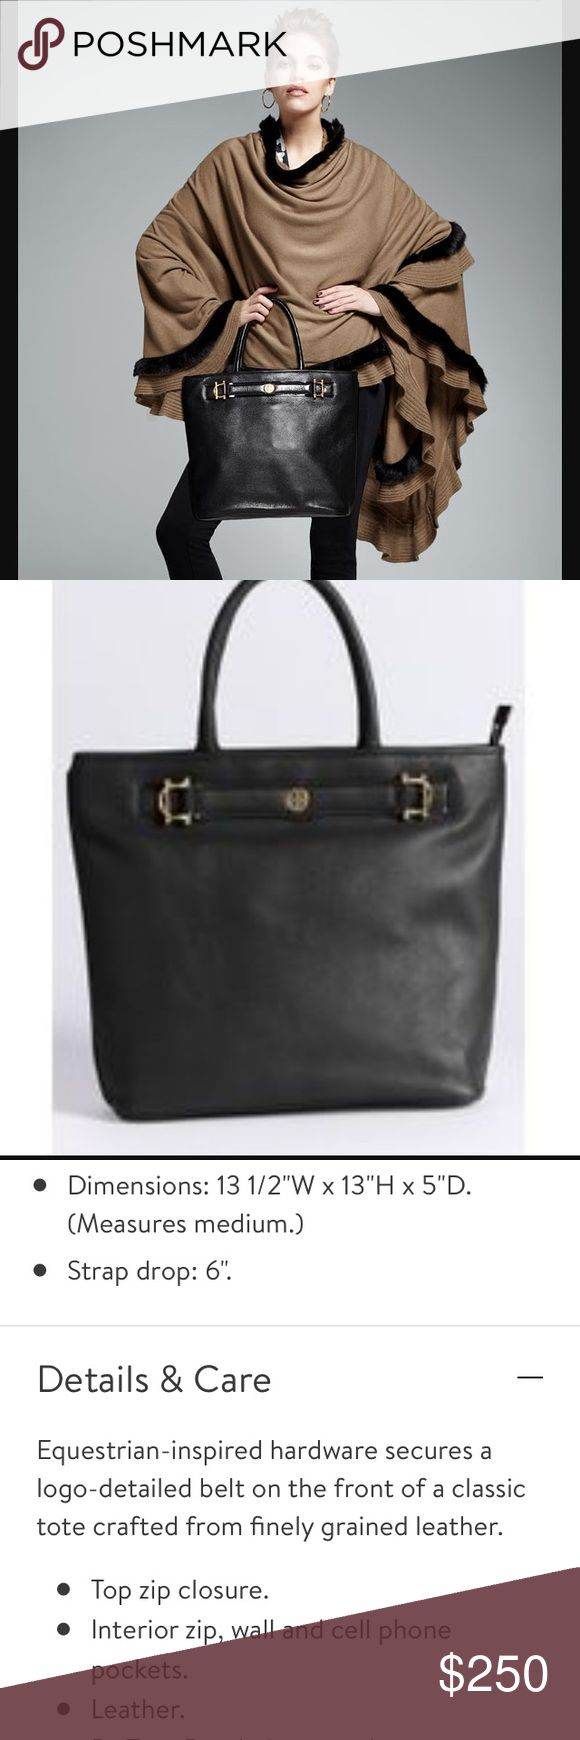 Tory Burch horsebit jaden pebbled leather tote Tory Burch horsebit jaden pebbled leather tote this bag is in really great condition minimal signs of wear very gently used Tory Burch Bags Totes